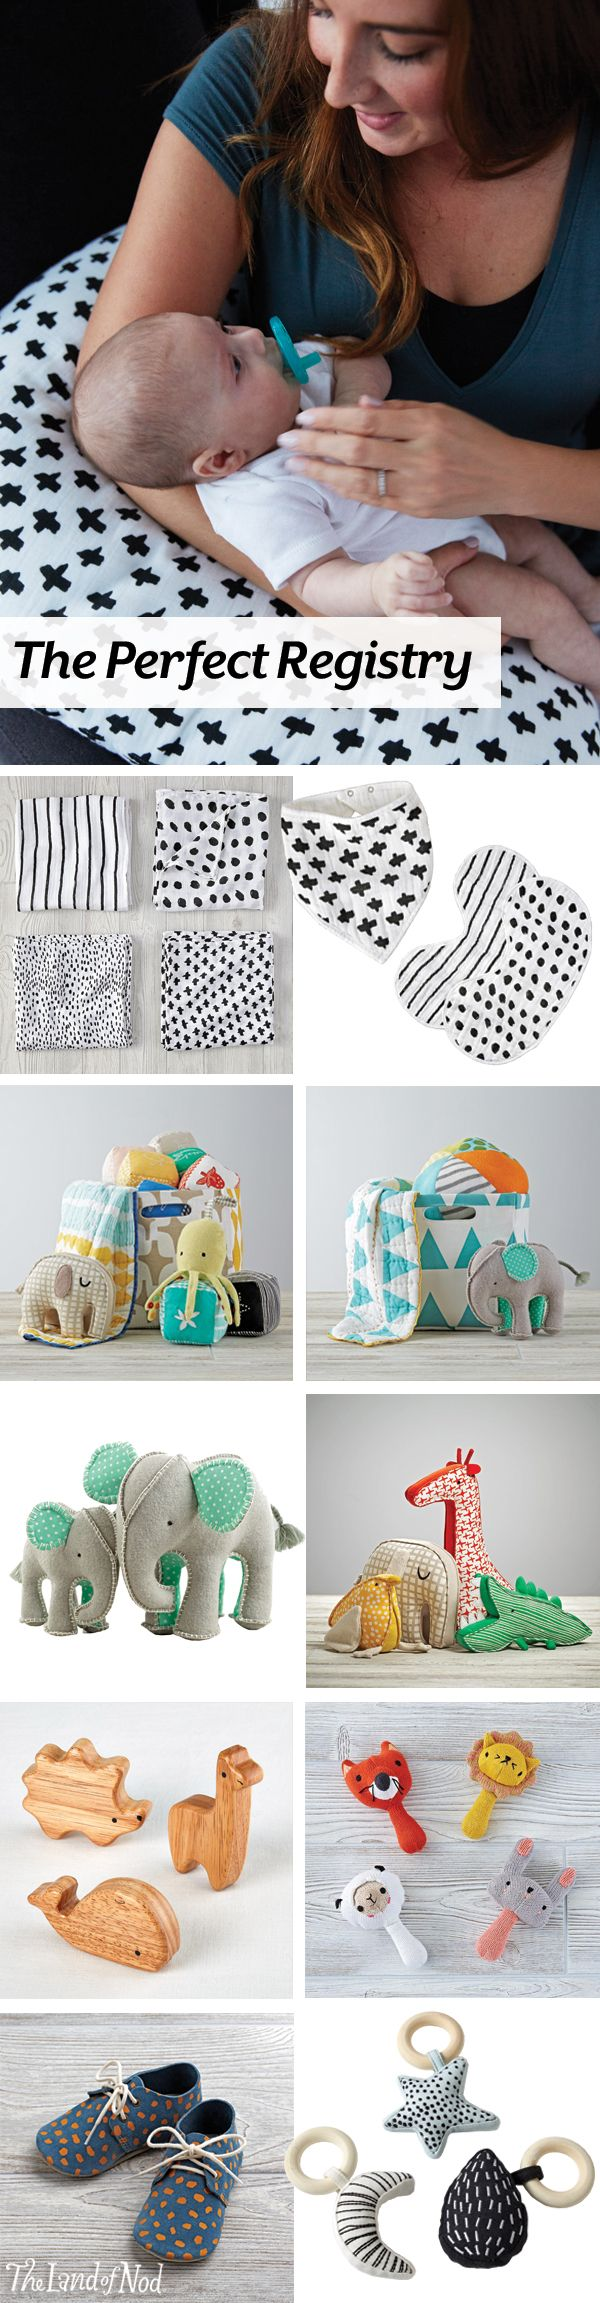 Take a look at the amazing baby gifts your little ones can get with the help of The Land of Nod's baby registry.